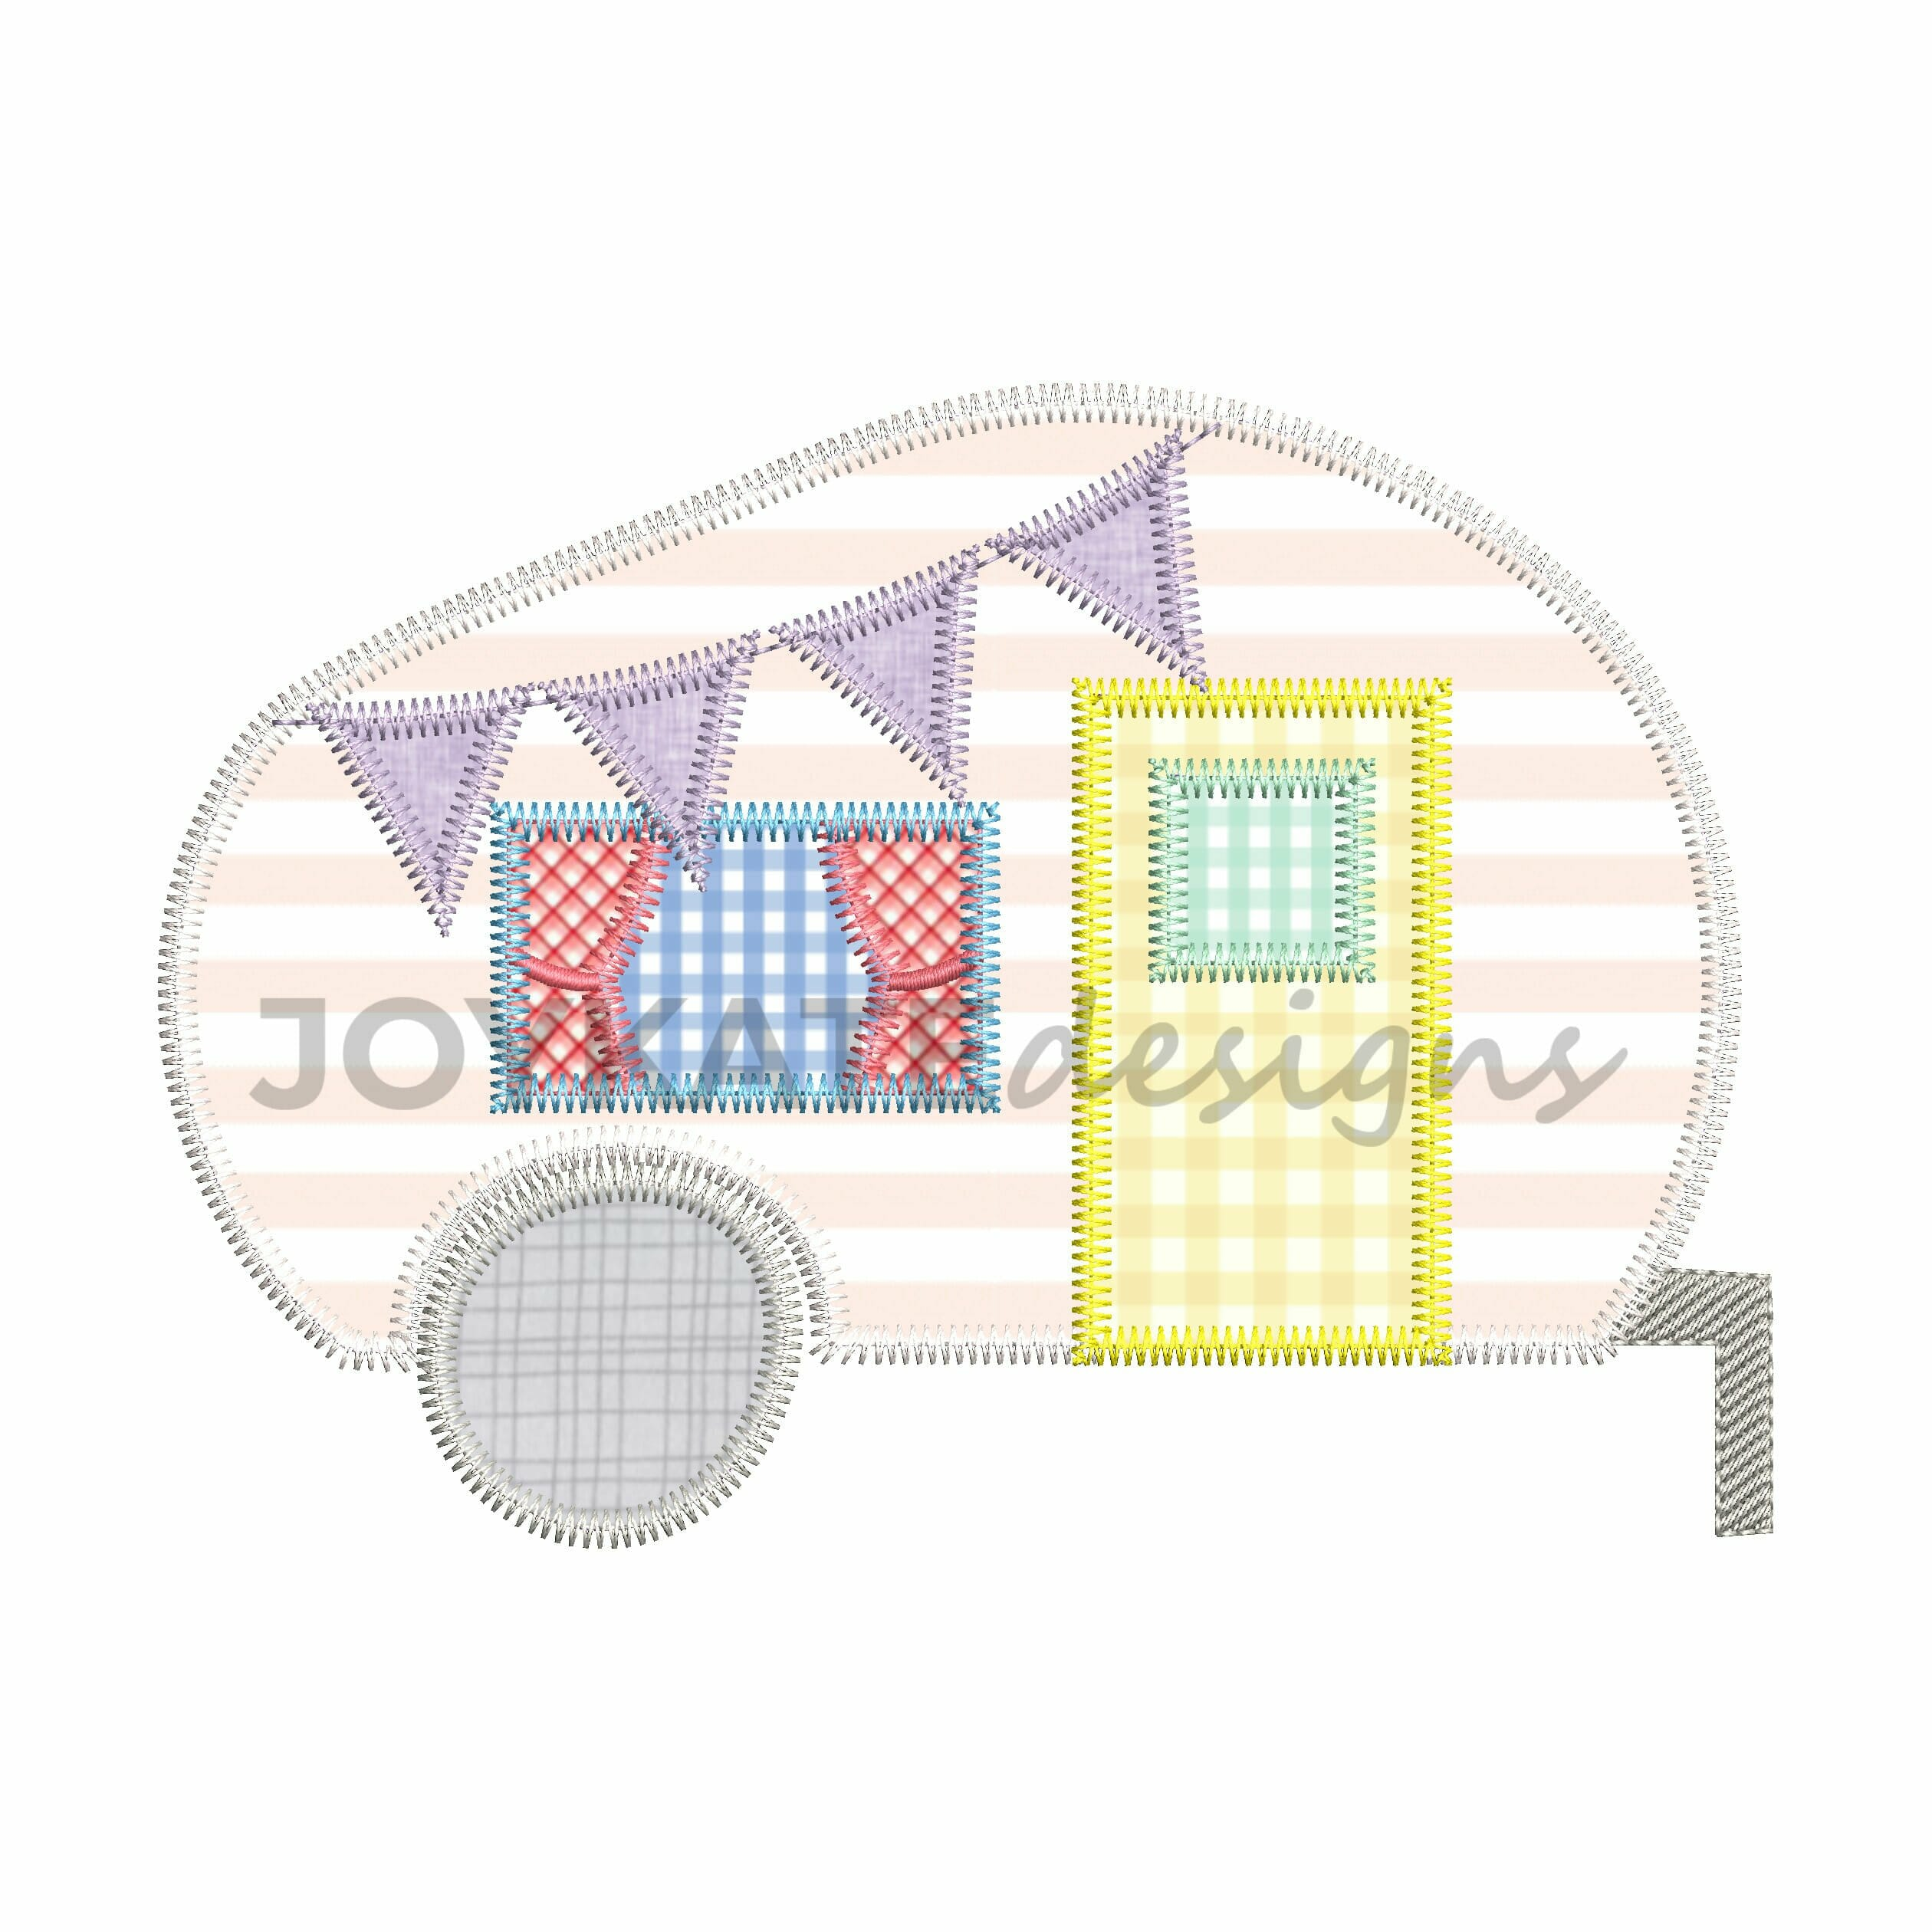 Camper Zigzag Stitch Applique Embroidery Design Joy Kate Designs